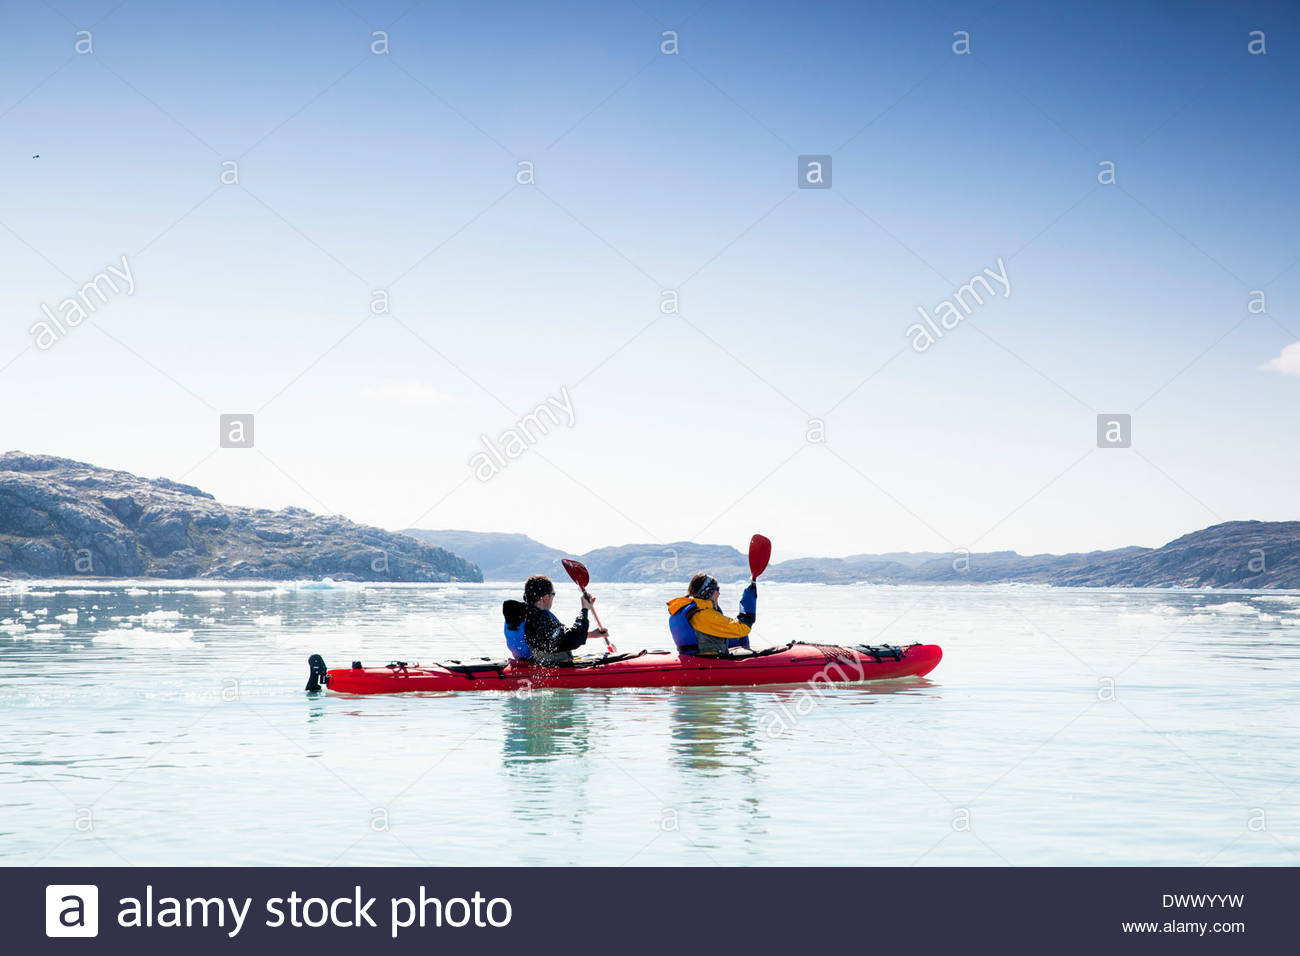 People kayaking on sea against clear sky - Stock Image